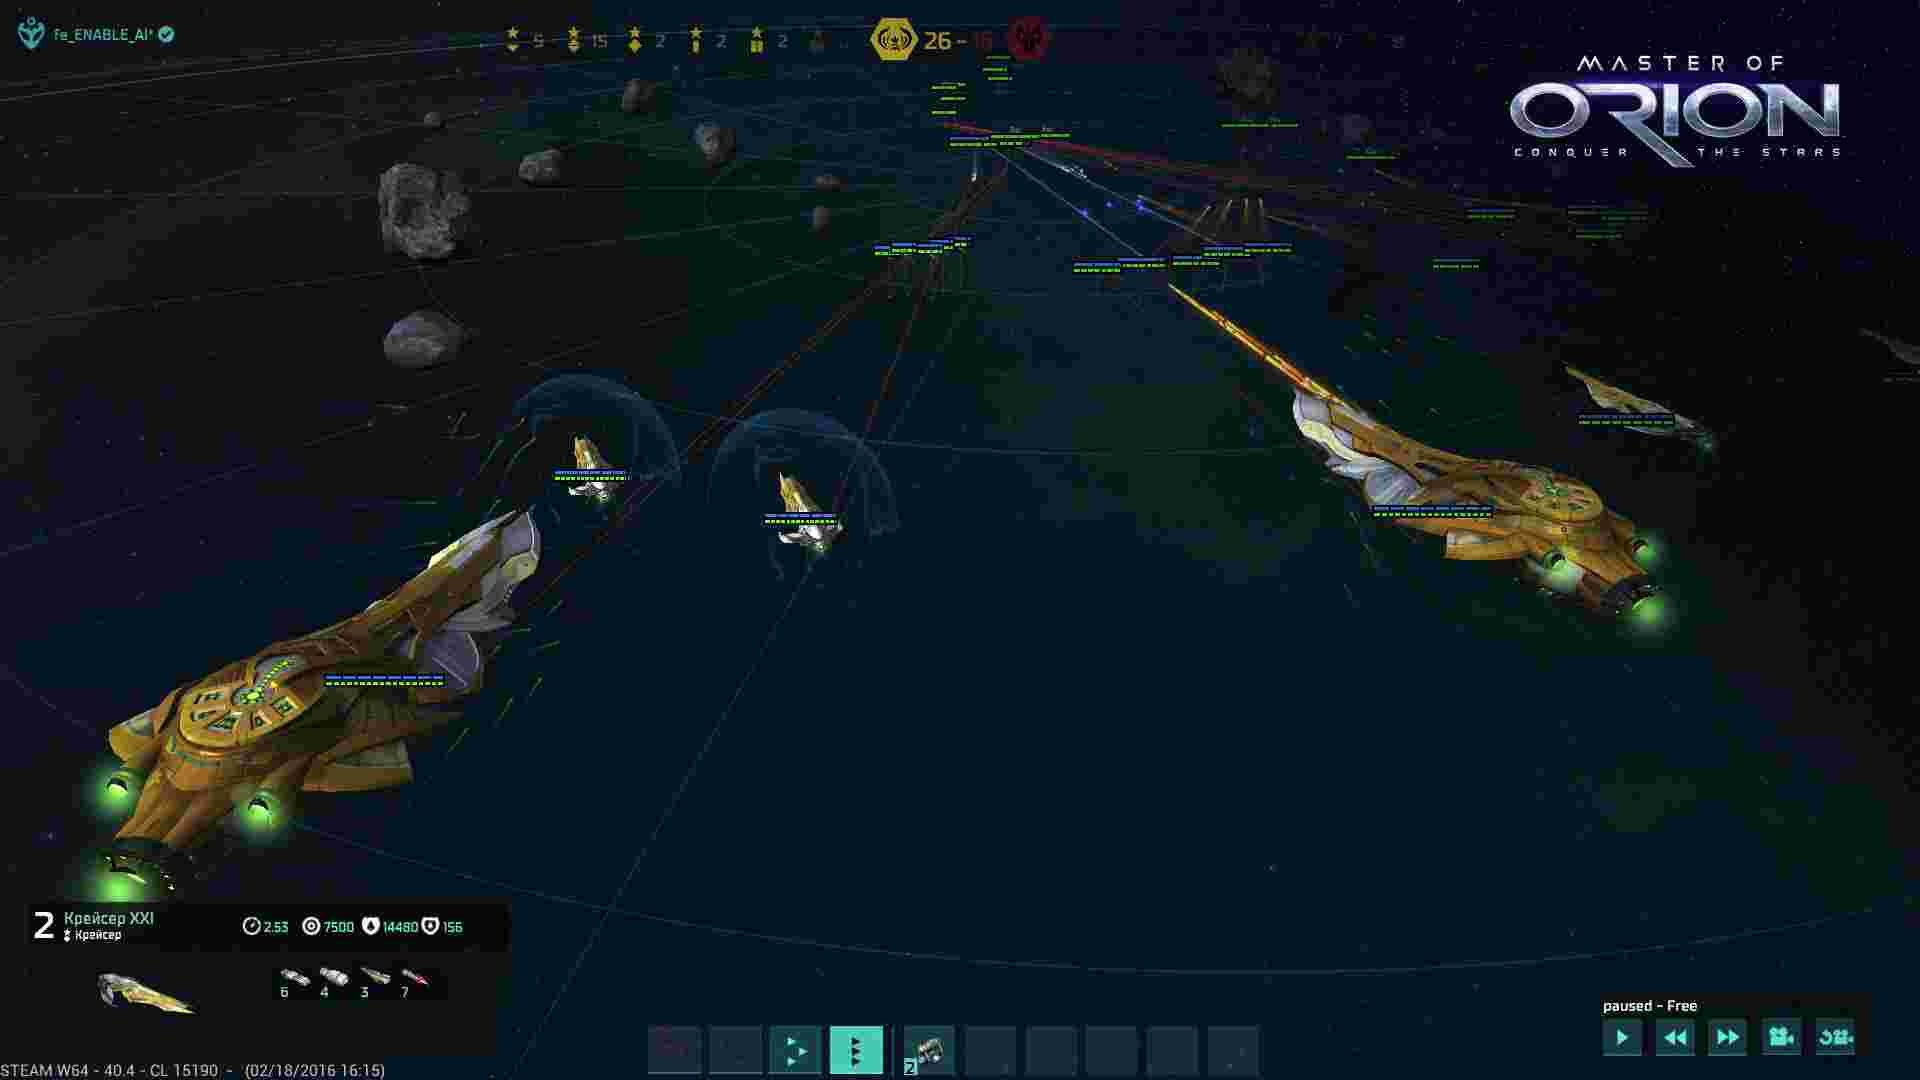 news.moo_screens_gameplay_early_access_image_03